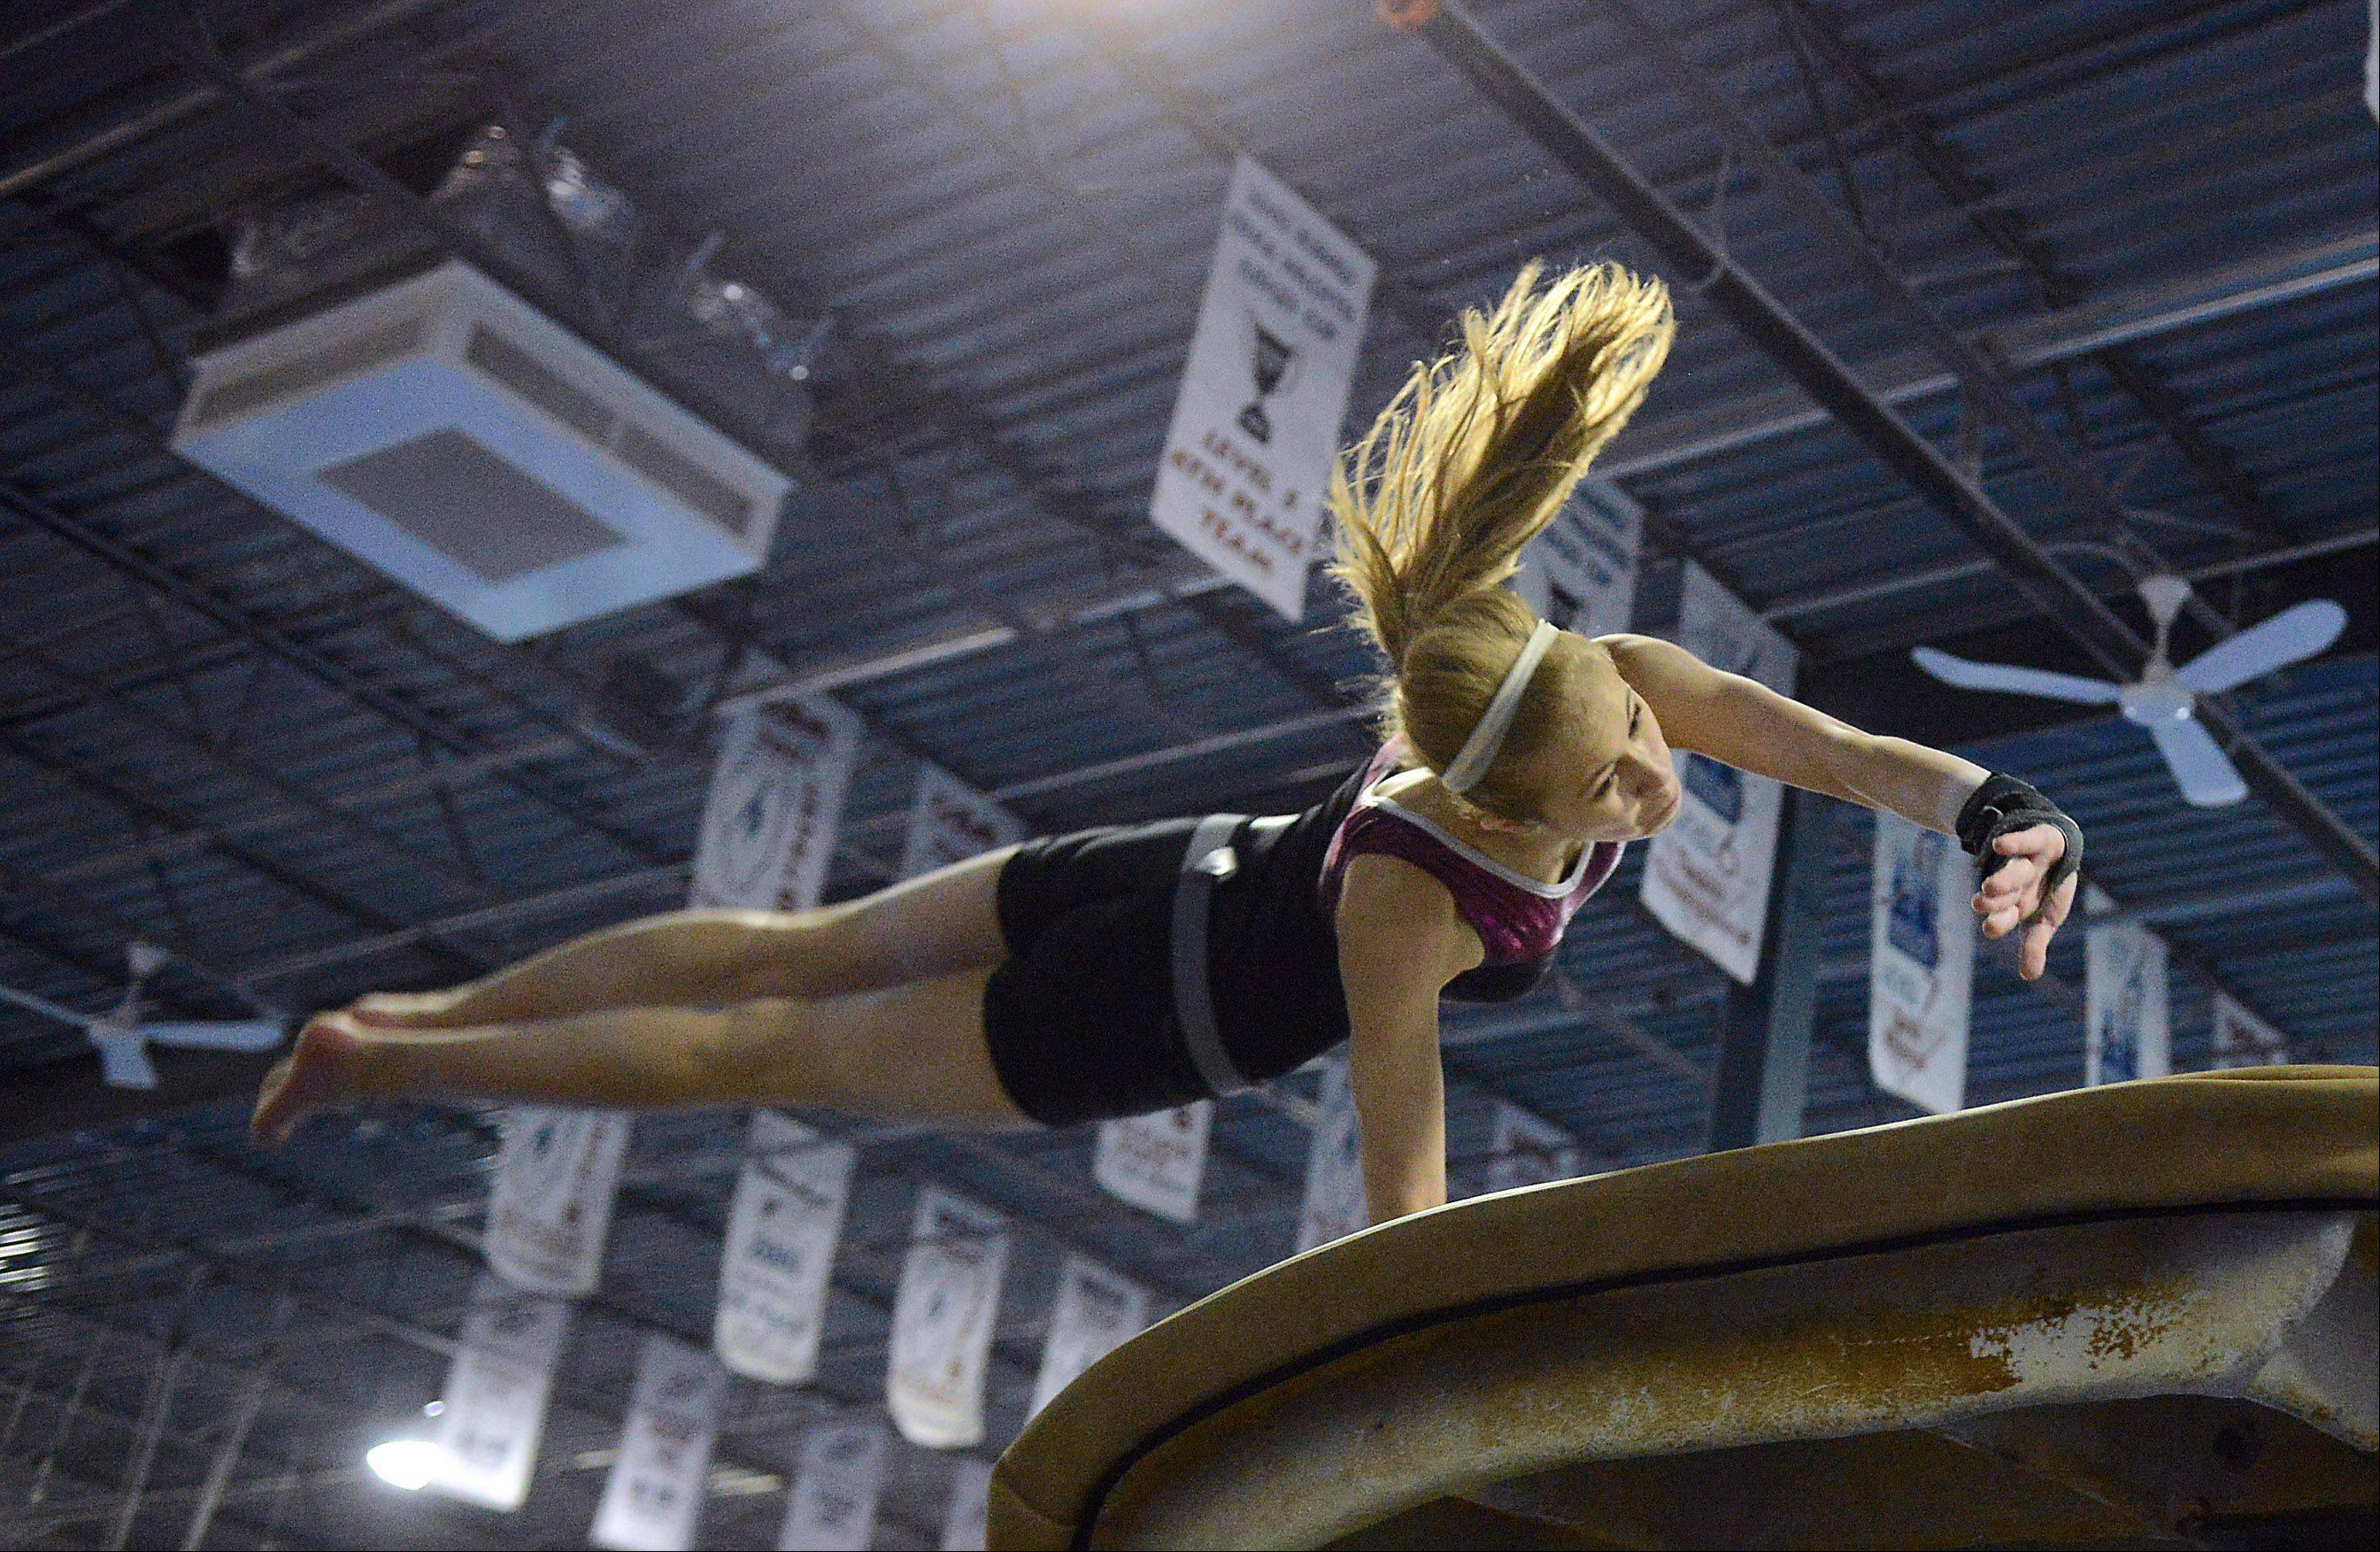 Ashley McKee of the U-46 co-op gymnastics team works on the vault during practice in Hanover Park Monday.